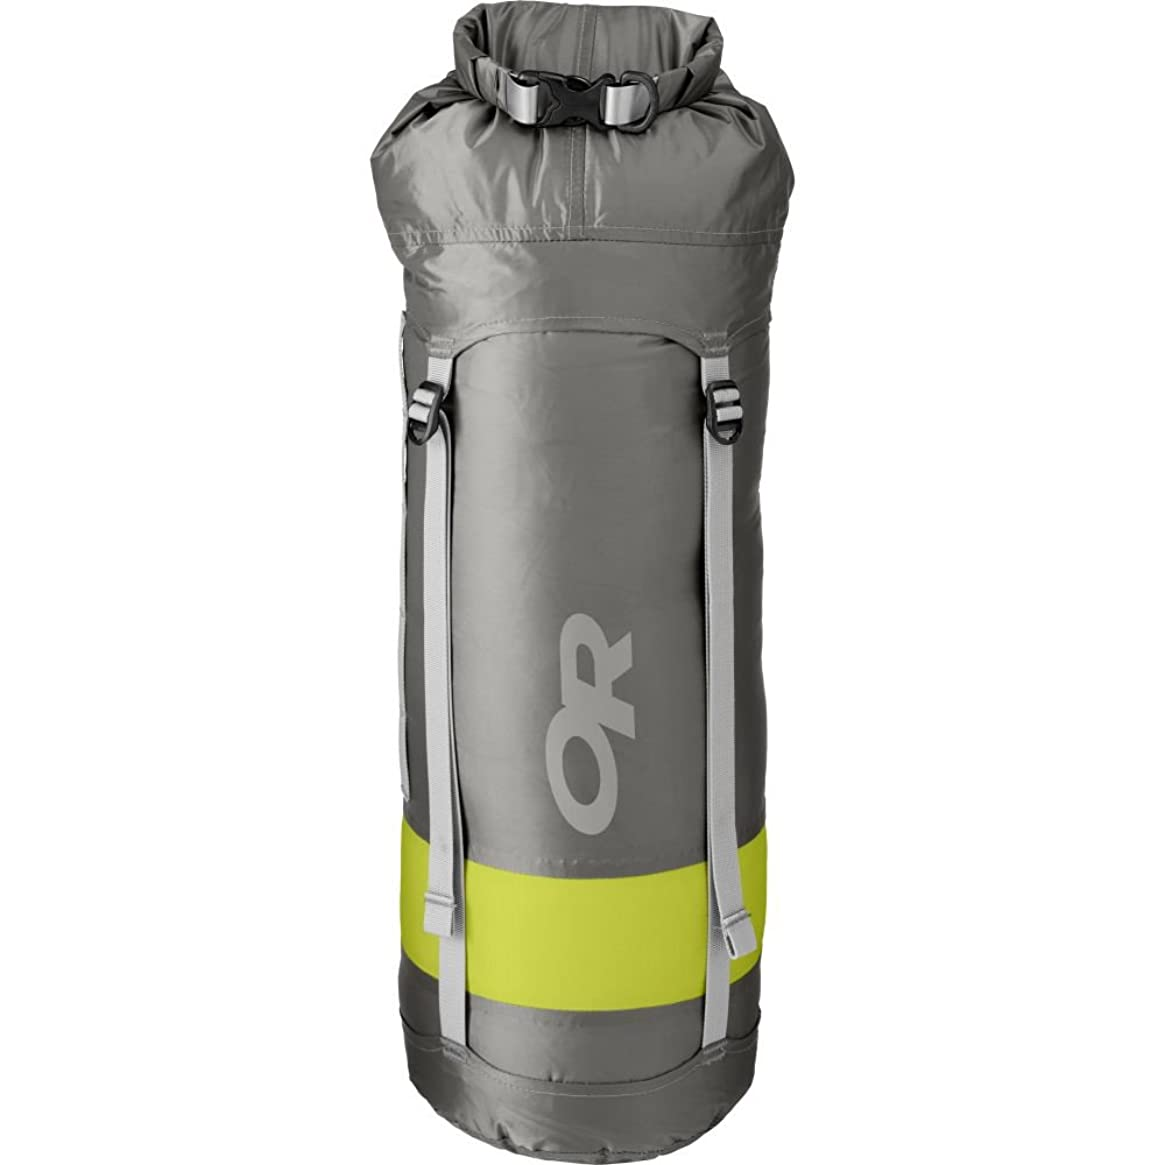 Outdoor Research Airpurge Dry Compression Sack ? 20 Liter